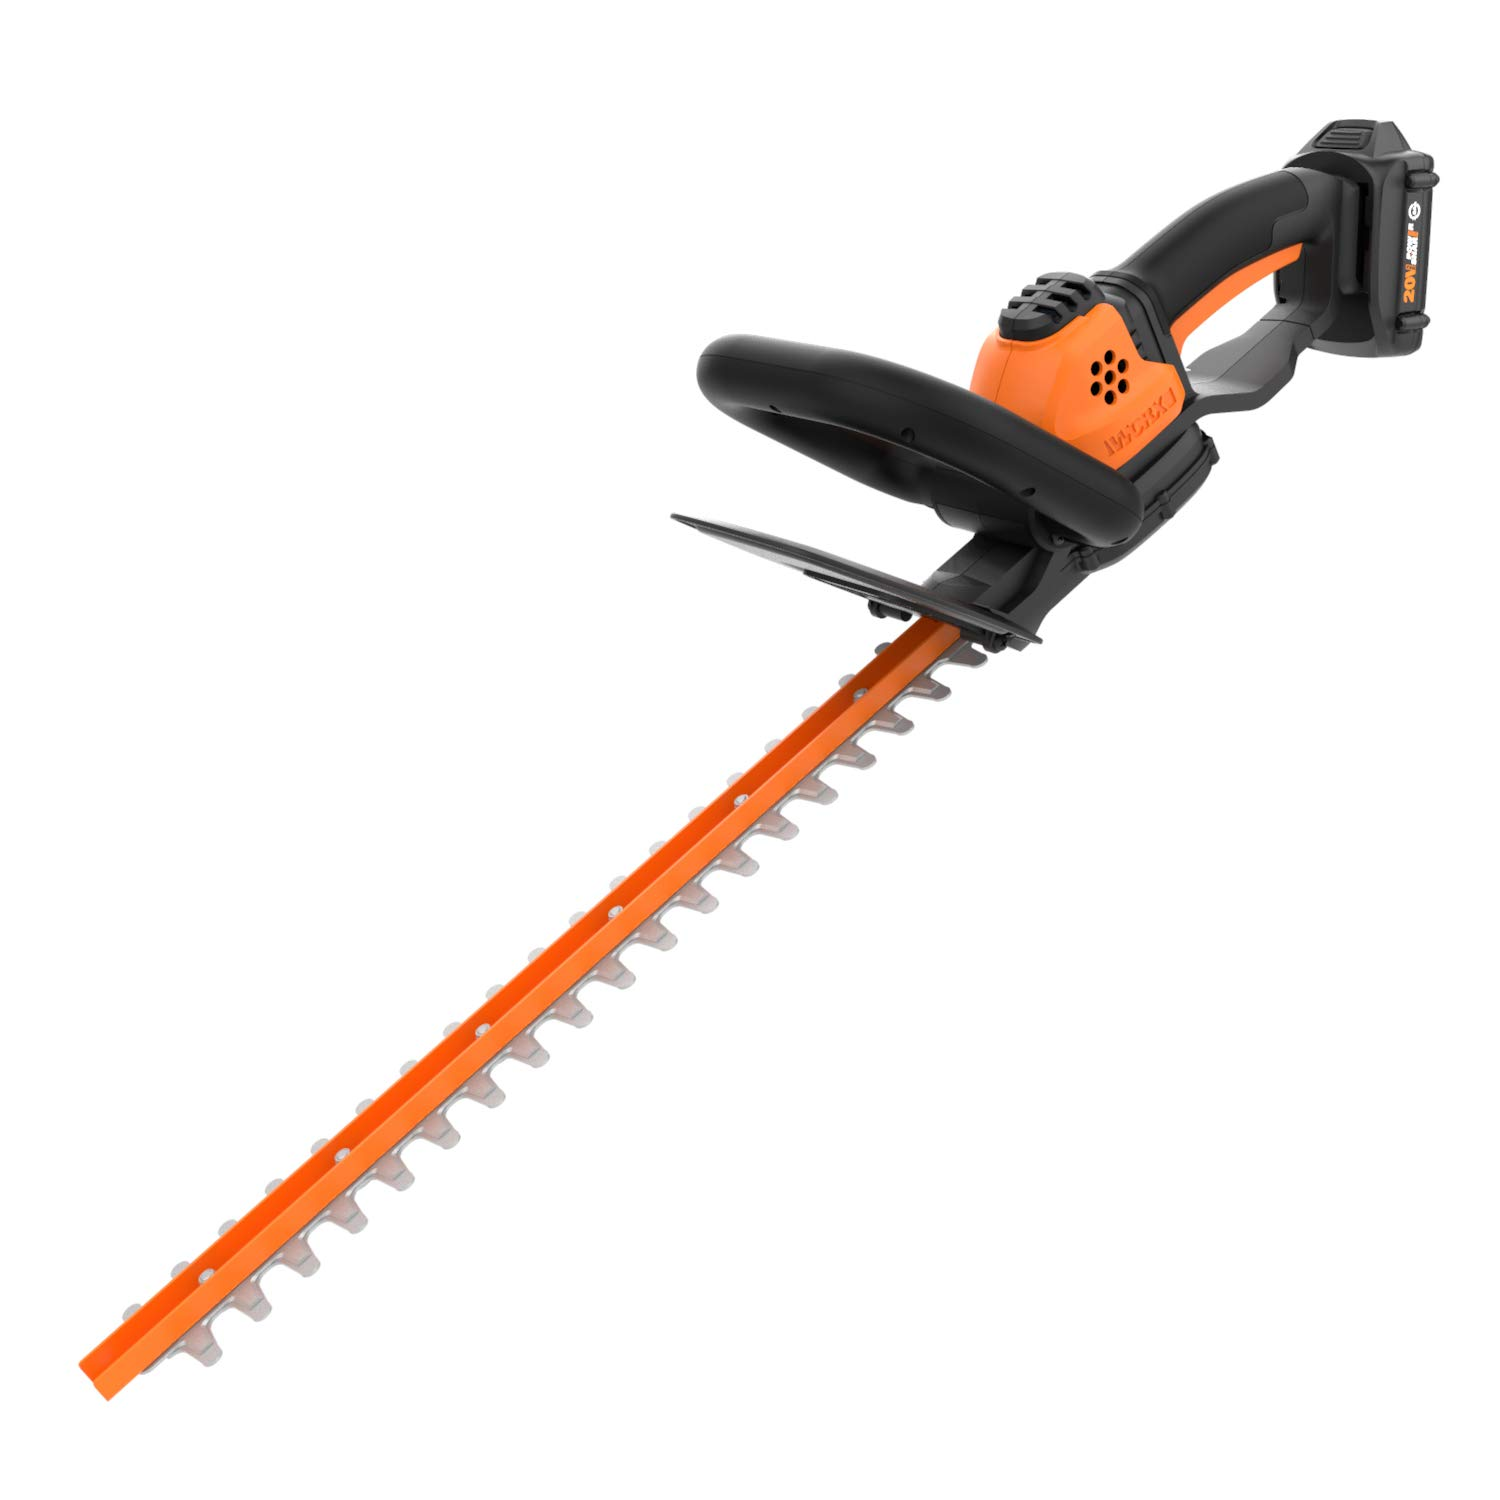 (WG261) 20V Cordless Hedge Trimmer from Worx